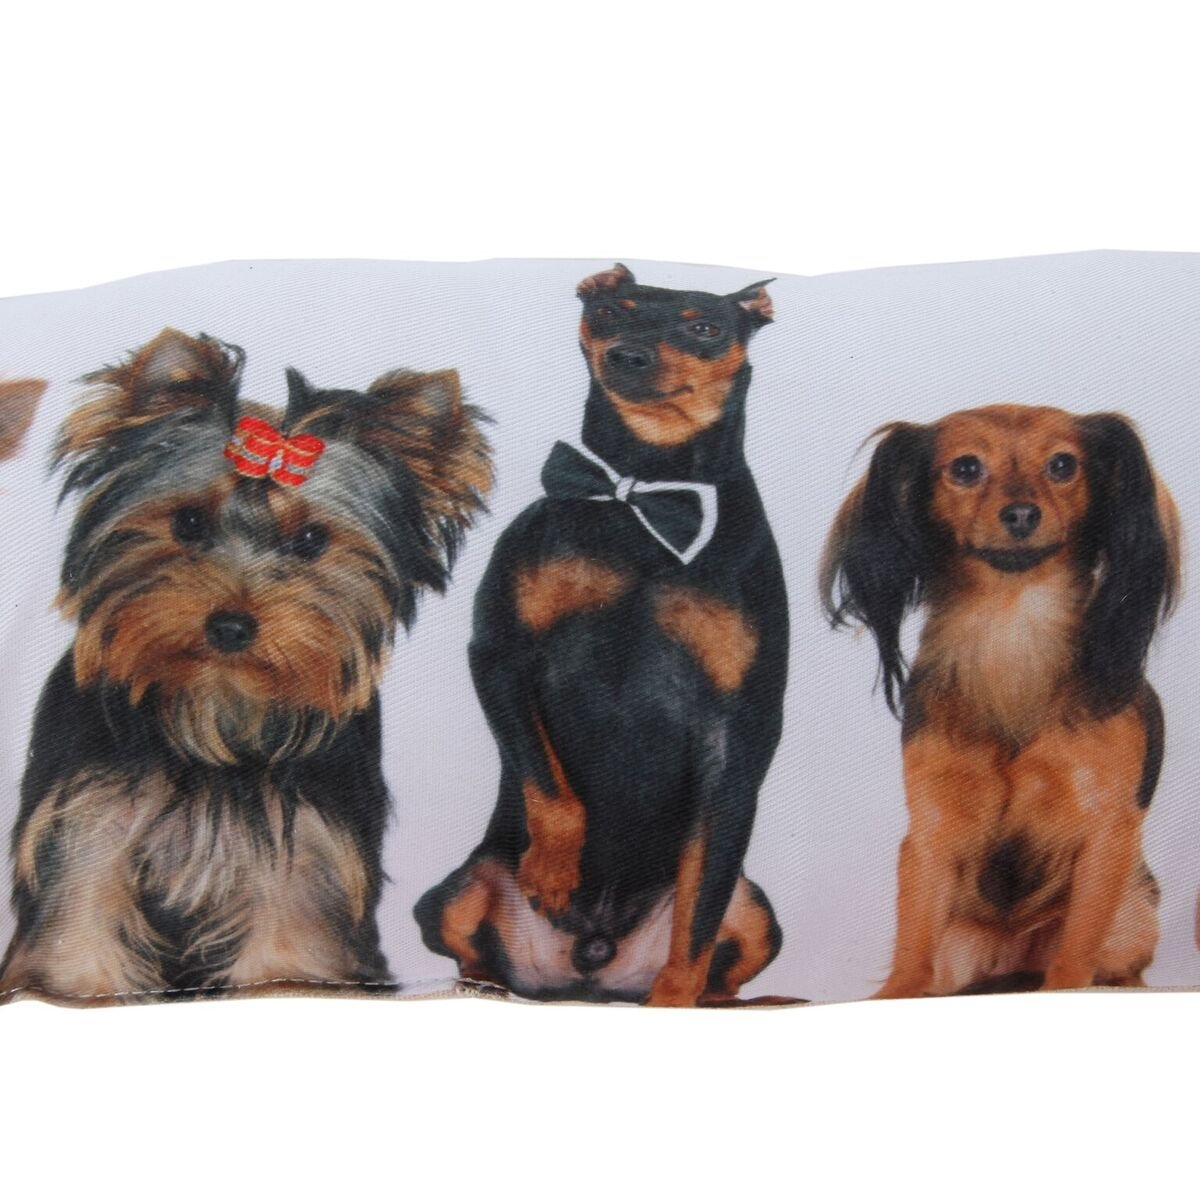 Dog Lovers Design 37 Wide Lily/'s Home SW1040 Dog Lovers Design Ideal Solution for Cold or Hot Air Drafts Lilys Home Door Draft Stopper and Air Seal Gap Blocker Fits 36 Inch Wide Flush Doors 37 Wide, 2 Lbs. Weight